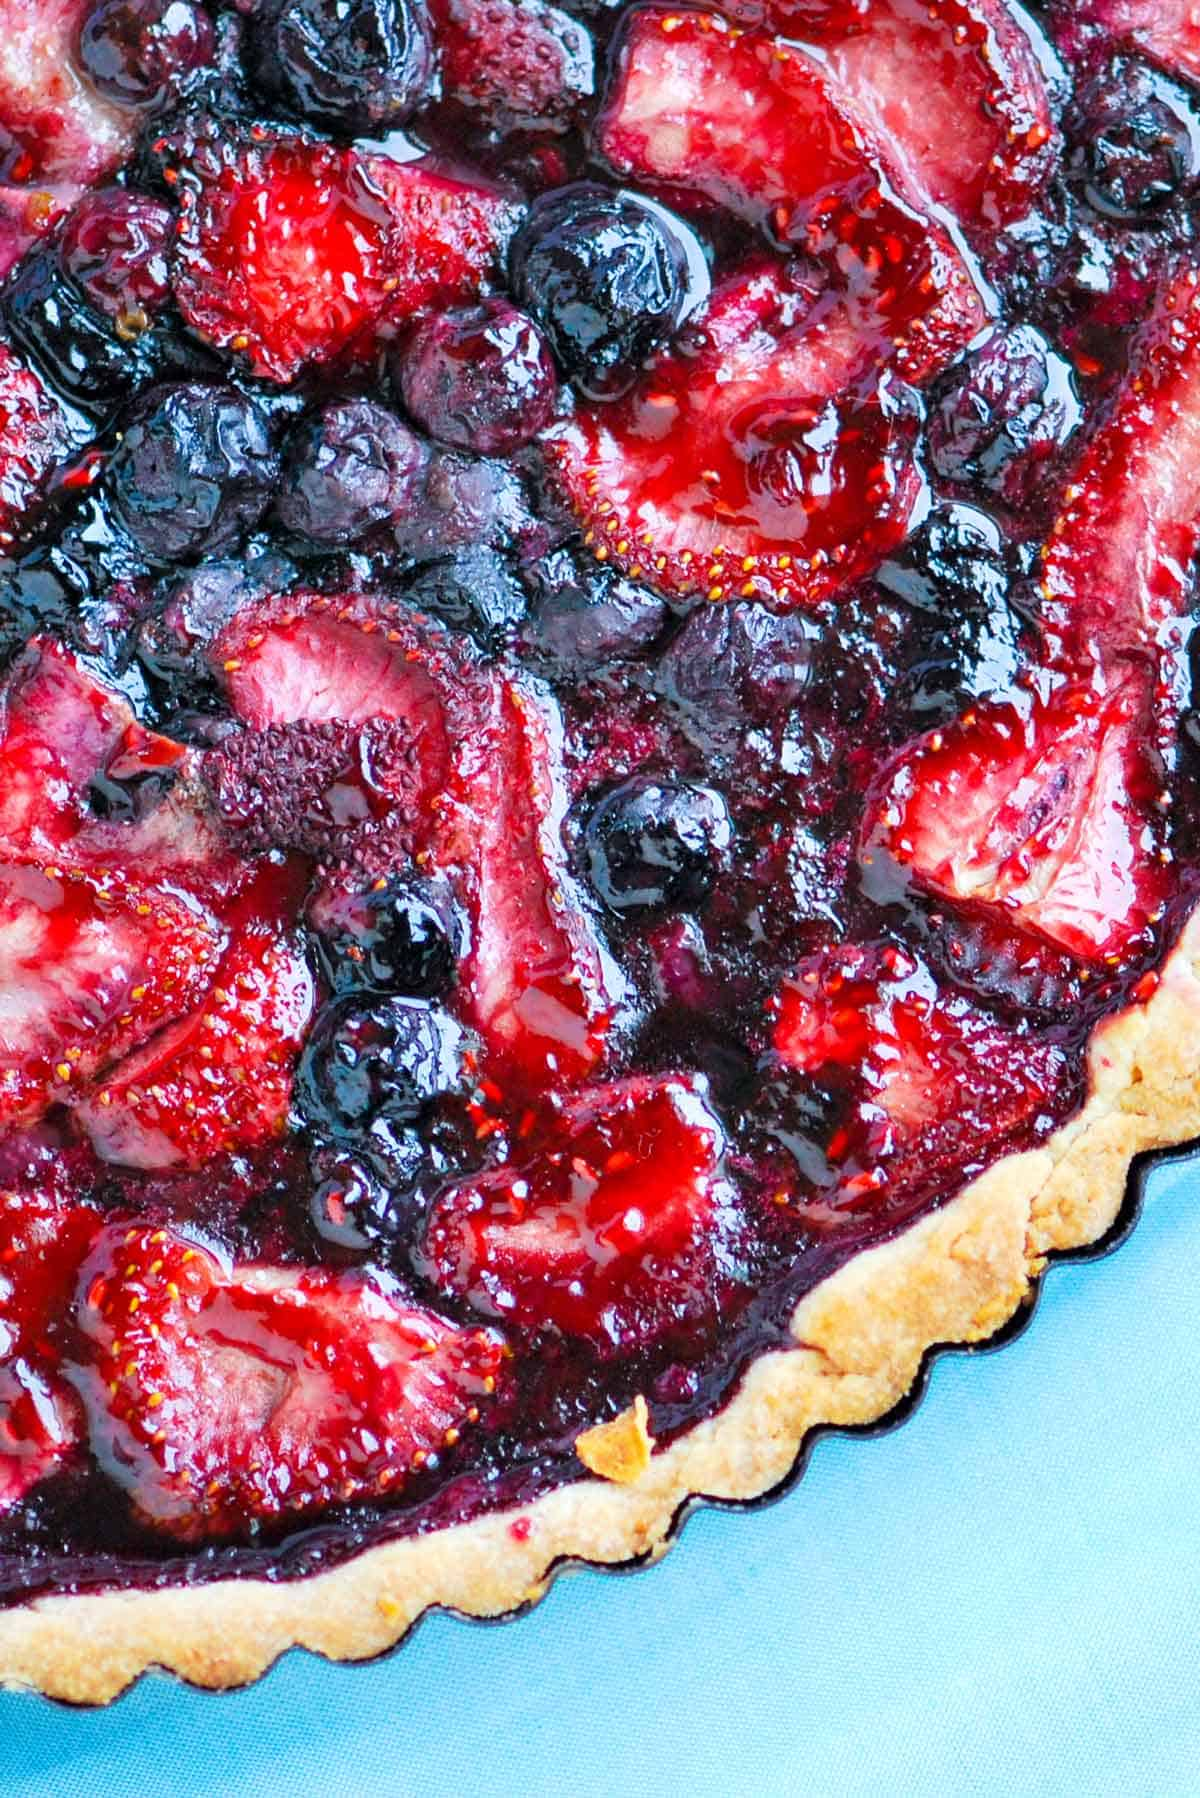 Blueberry and Strawberry Tart Recipe